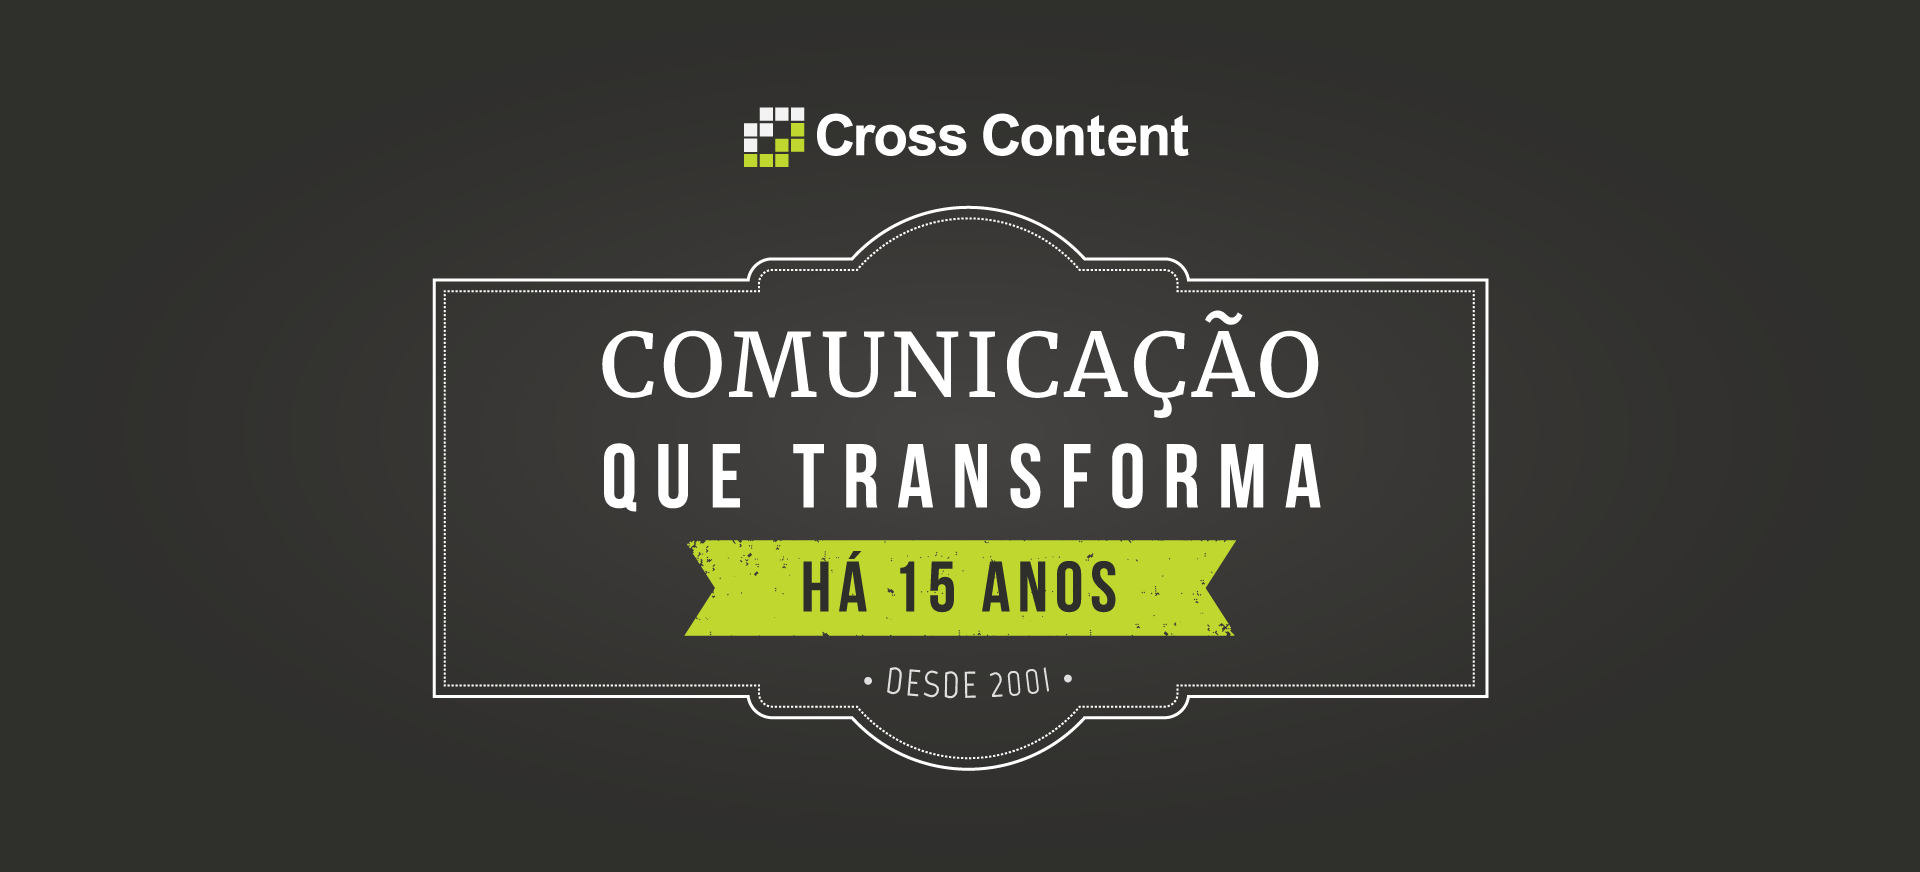 Cross Content - 15 anos